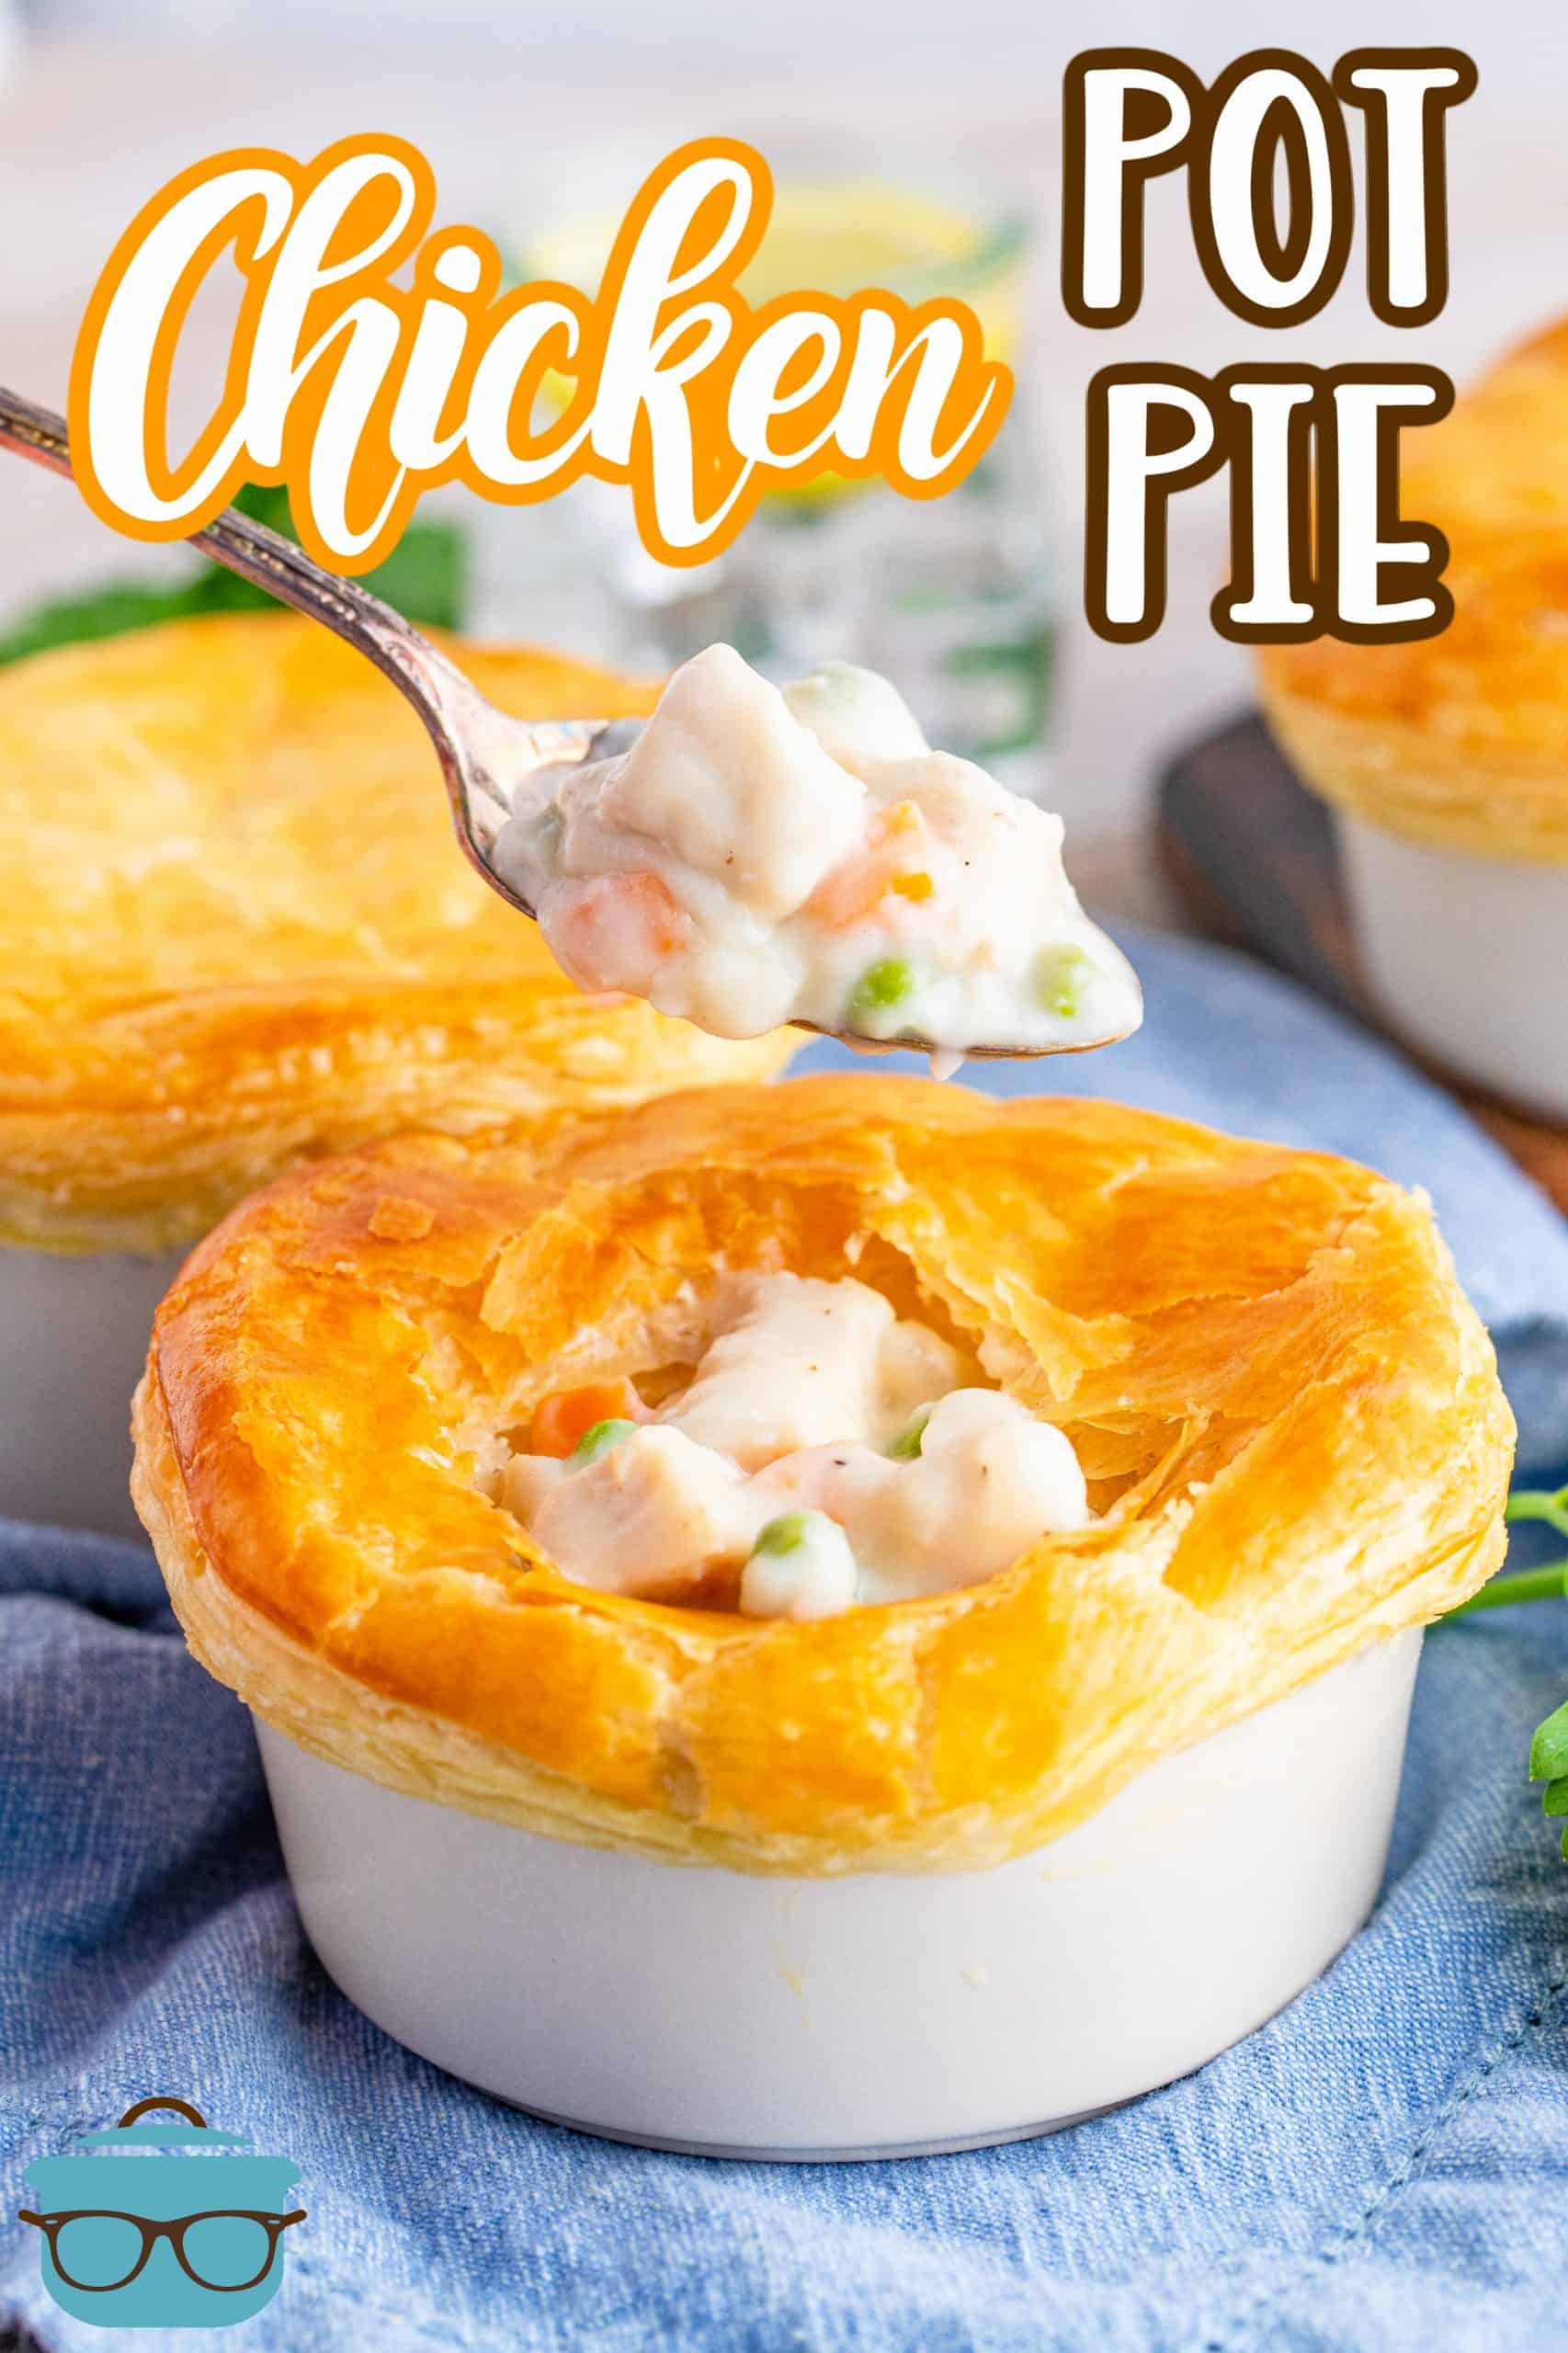 Easy Homemade Chicken Pot Pie recipe from The Country Cook, pot pie showin in a small white ramekin with a spoon above it holding some of the pot pie filling.